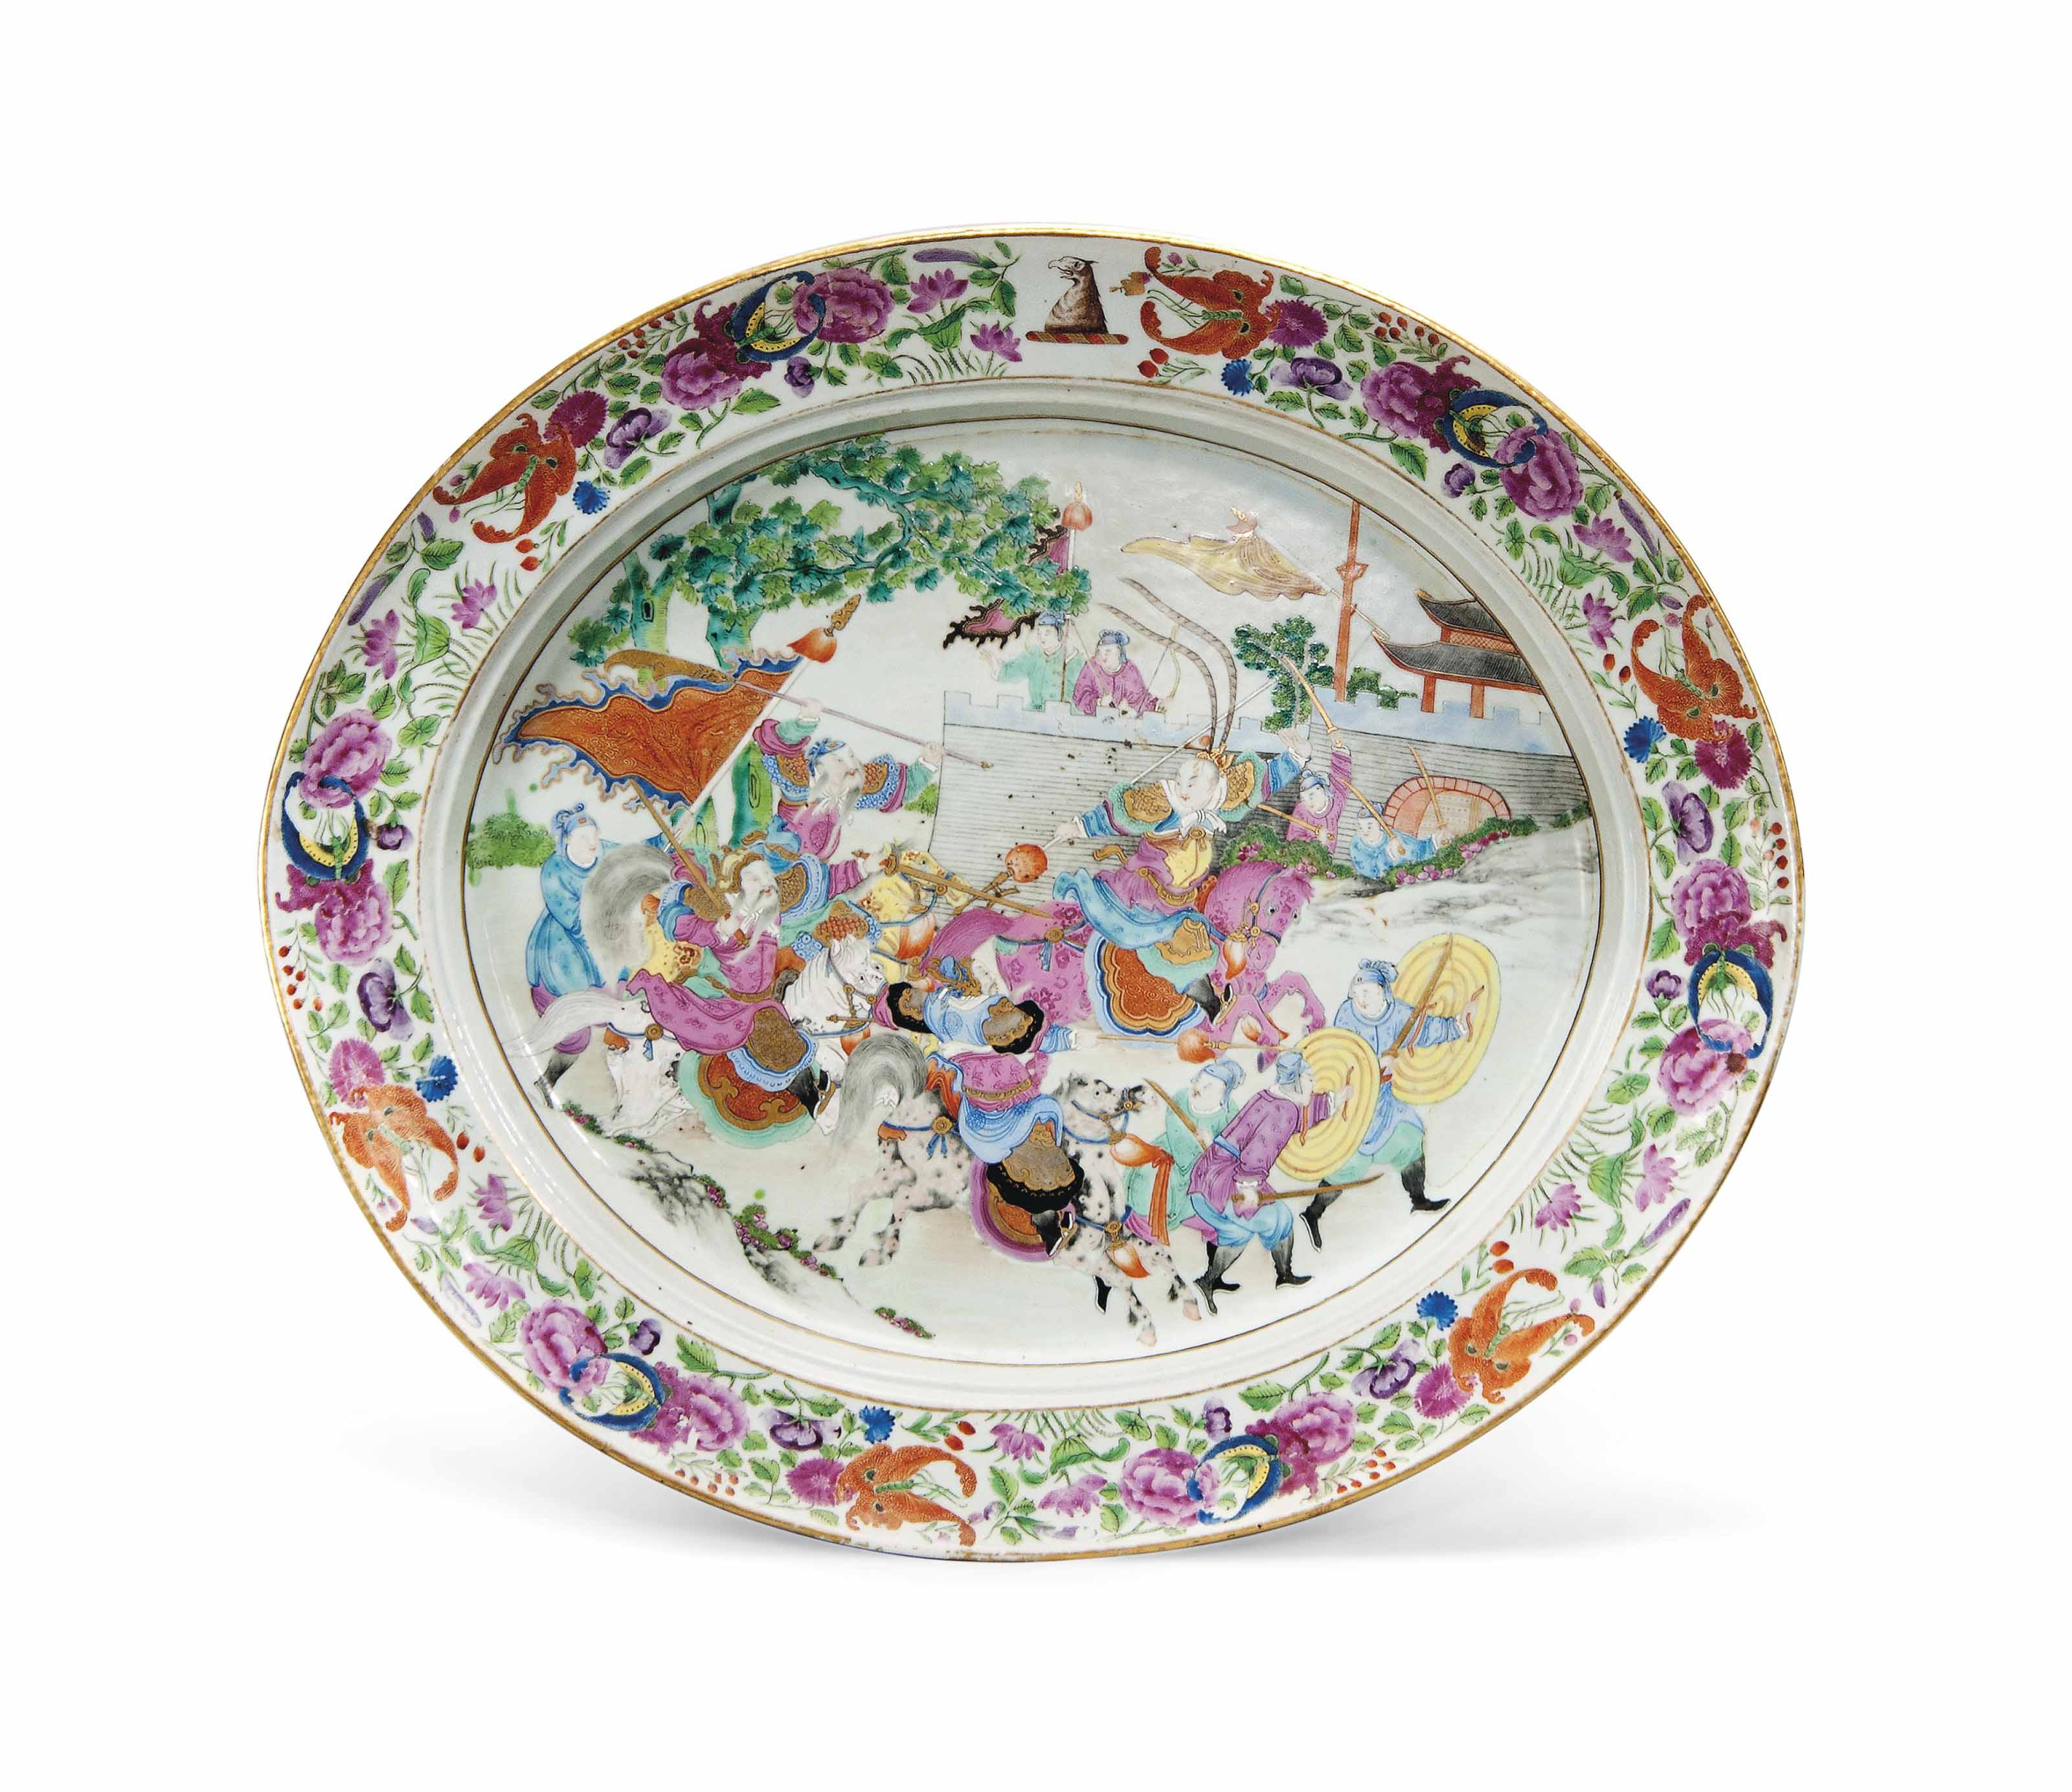 A CANTONESE FAMILLE ROSE OVAL CHARGER